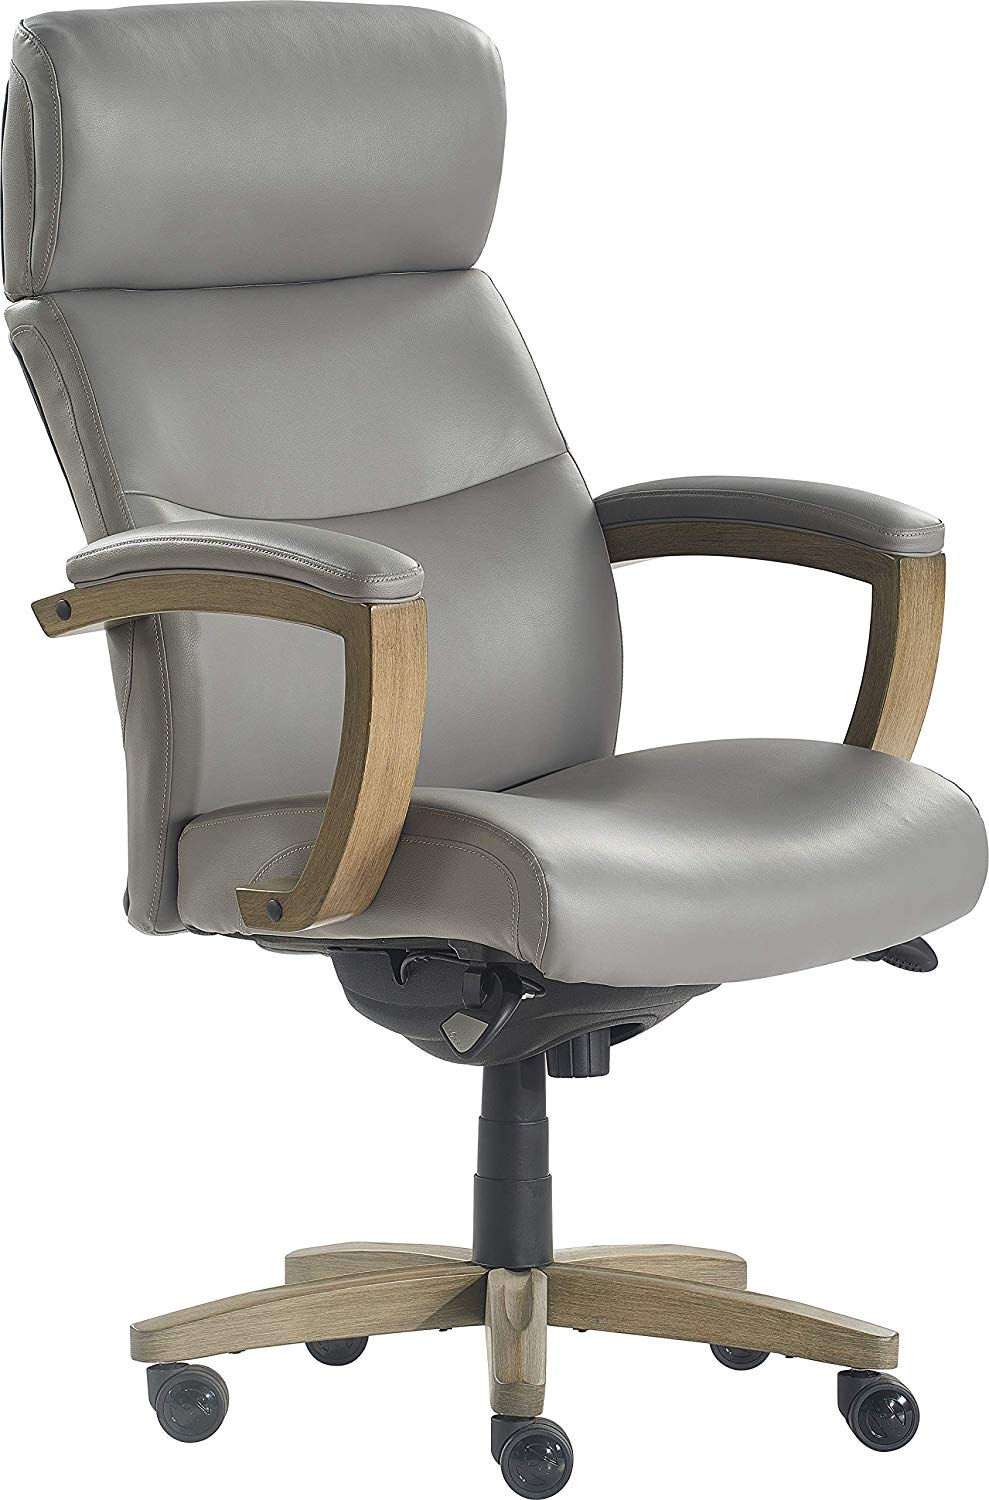 Amazon Com Lazboy Chr10086a Greyson Executive Office Chair Grey Kitchen Dining Executive Leather Office Chair Leather Office Chair Office Chair Laz y boy office chair